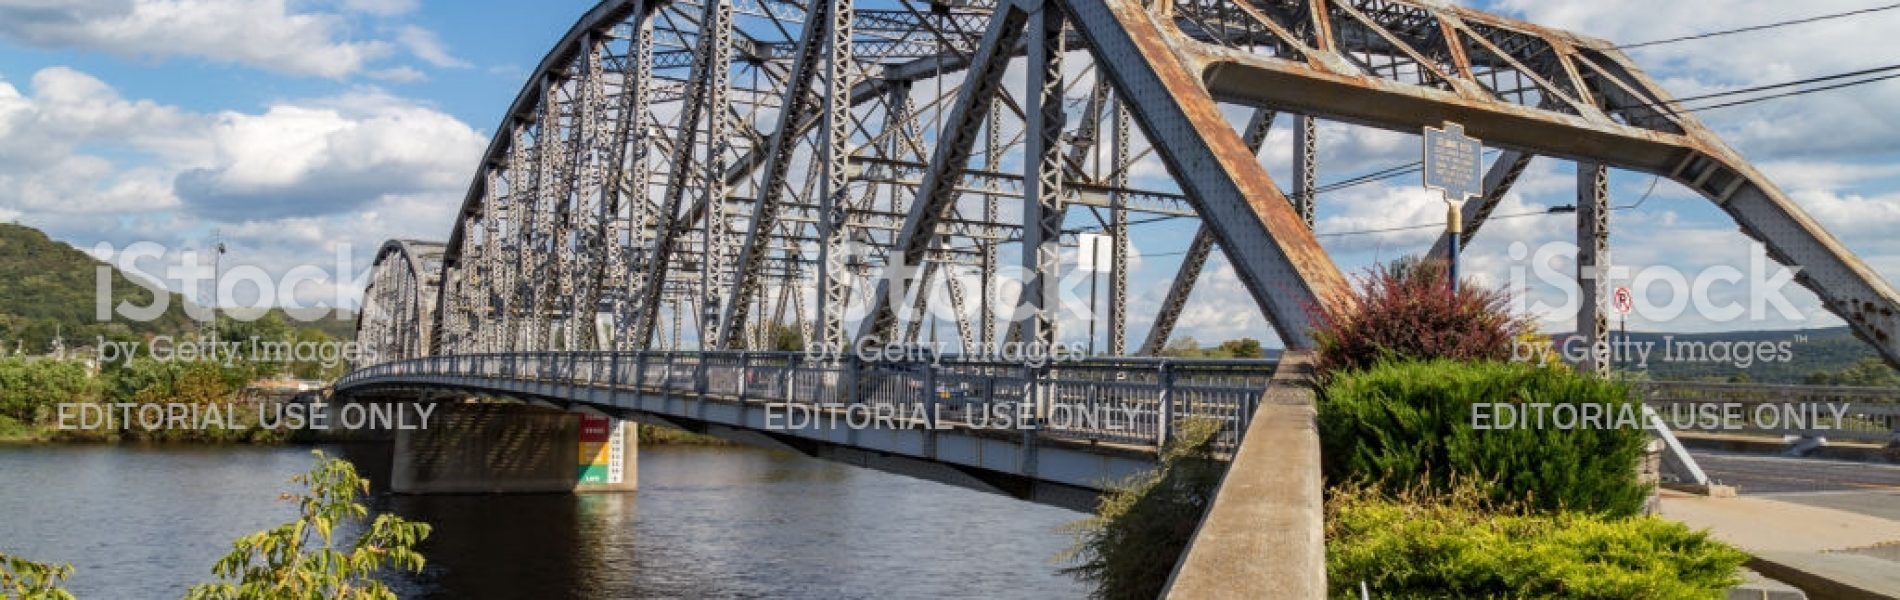 Matamoras, PA, USA - October 17, 2018:  The Mid-Delaware Bridge is a continuous truss bridge which carries U.S. Routes 6 and 209 across the river between the states of New York and Pennsylvania.